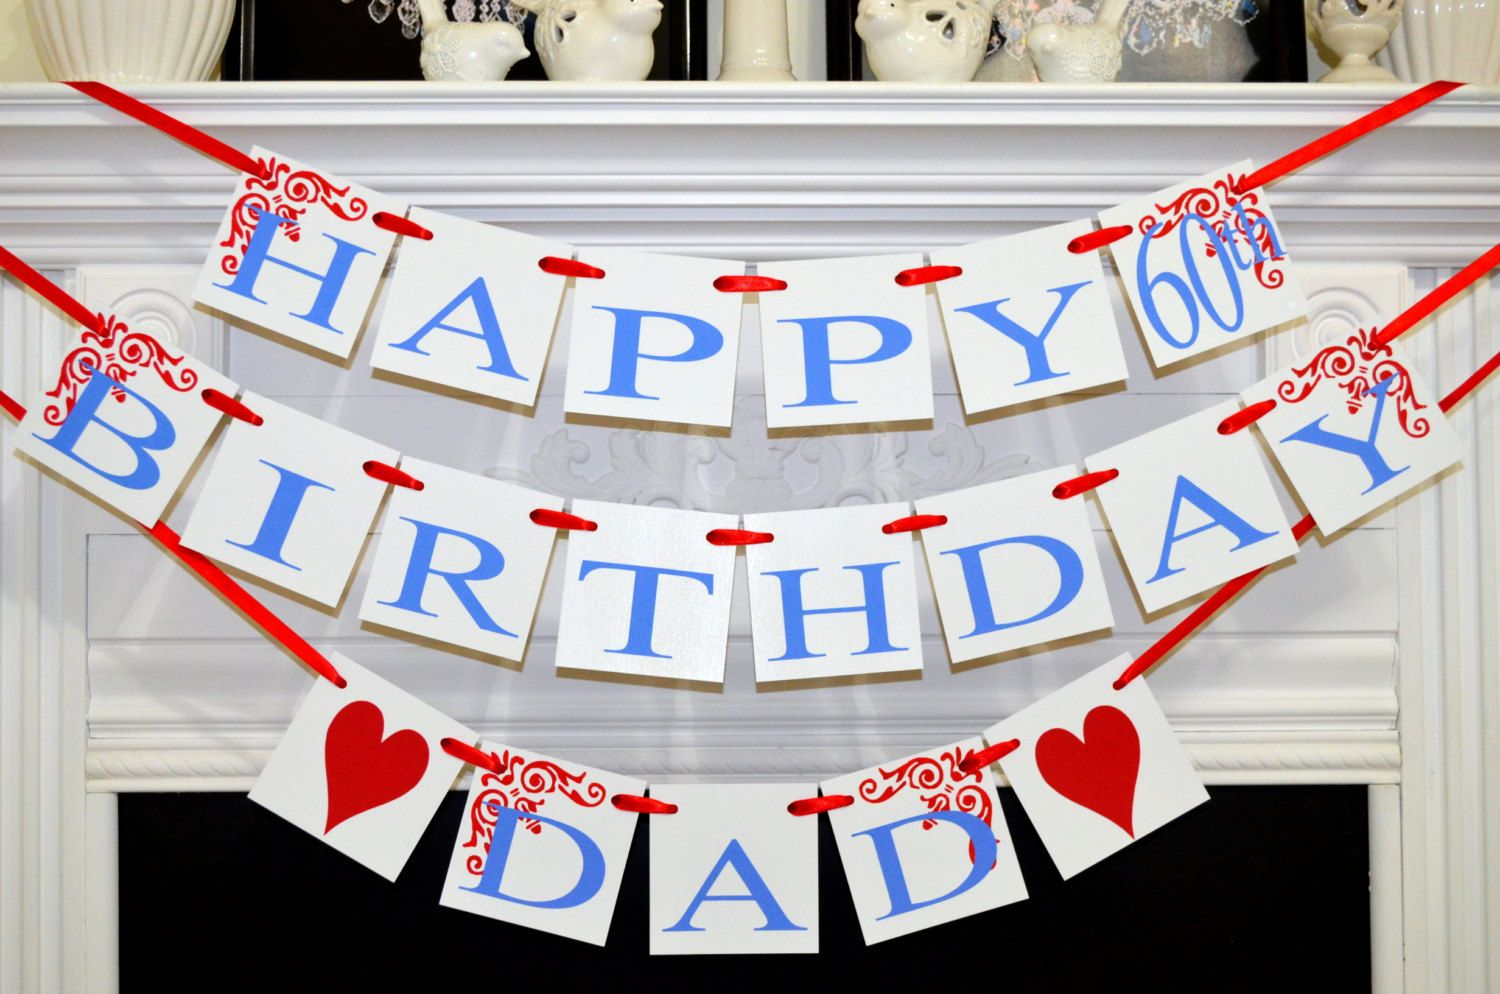 Happy Birthday Day Decorations Male Di DCBannerDesigns 2900